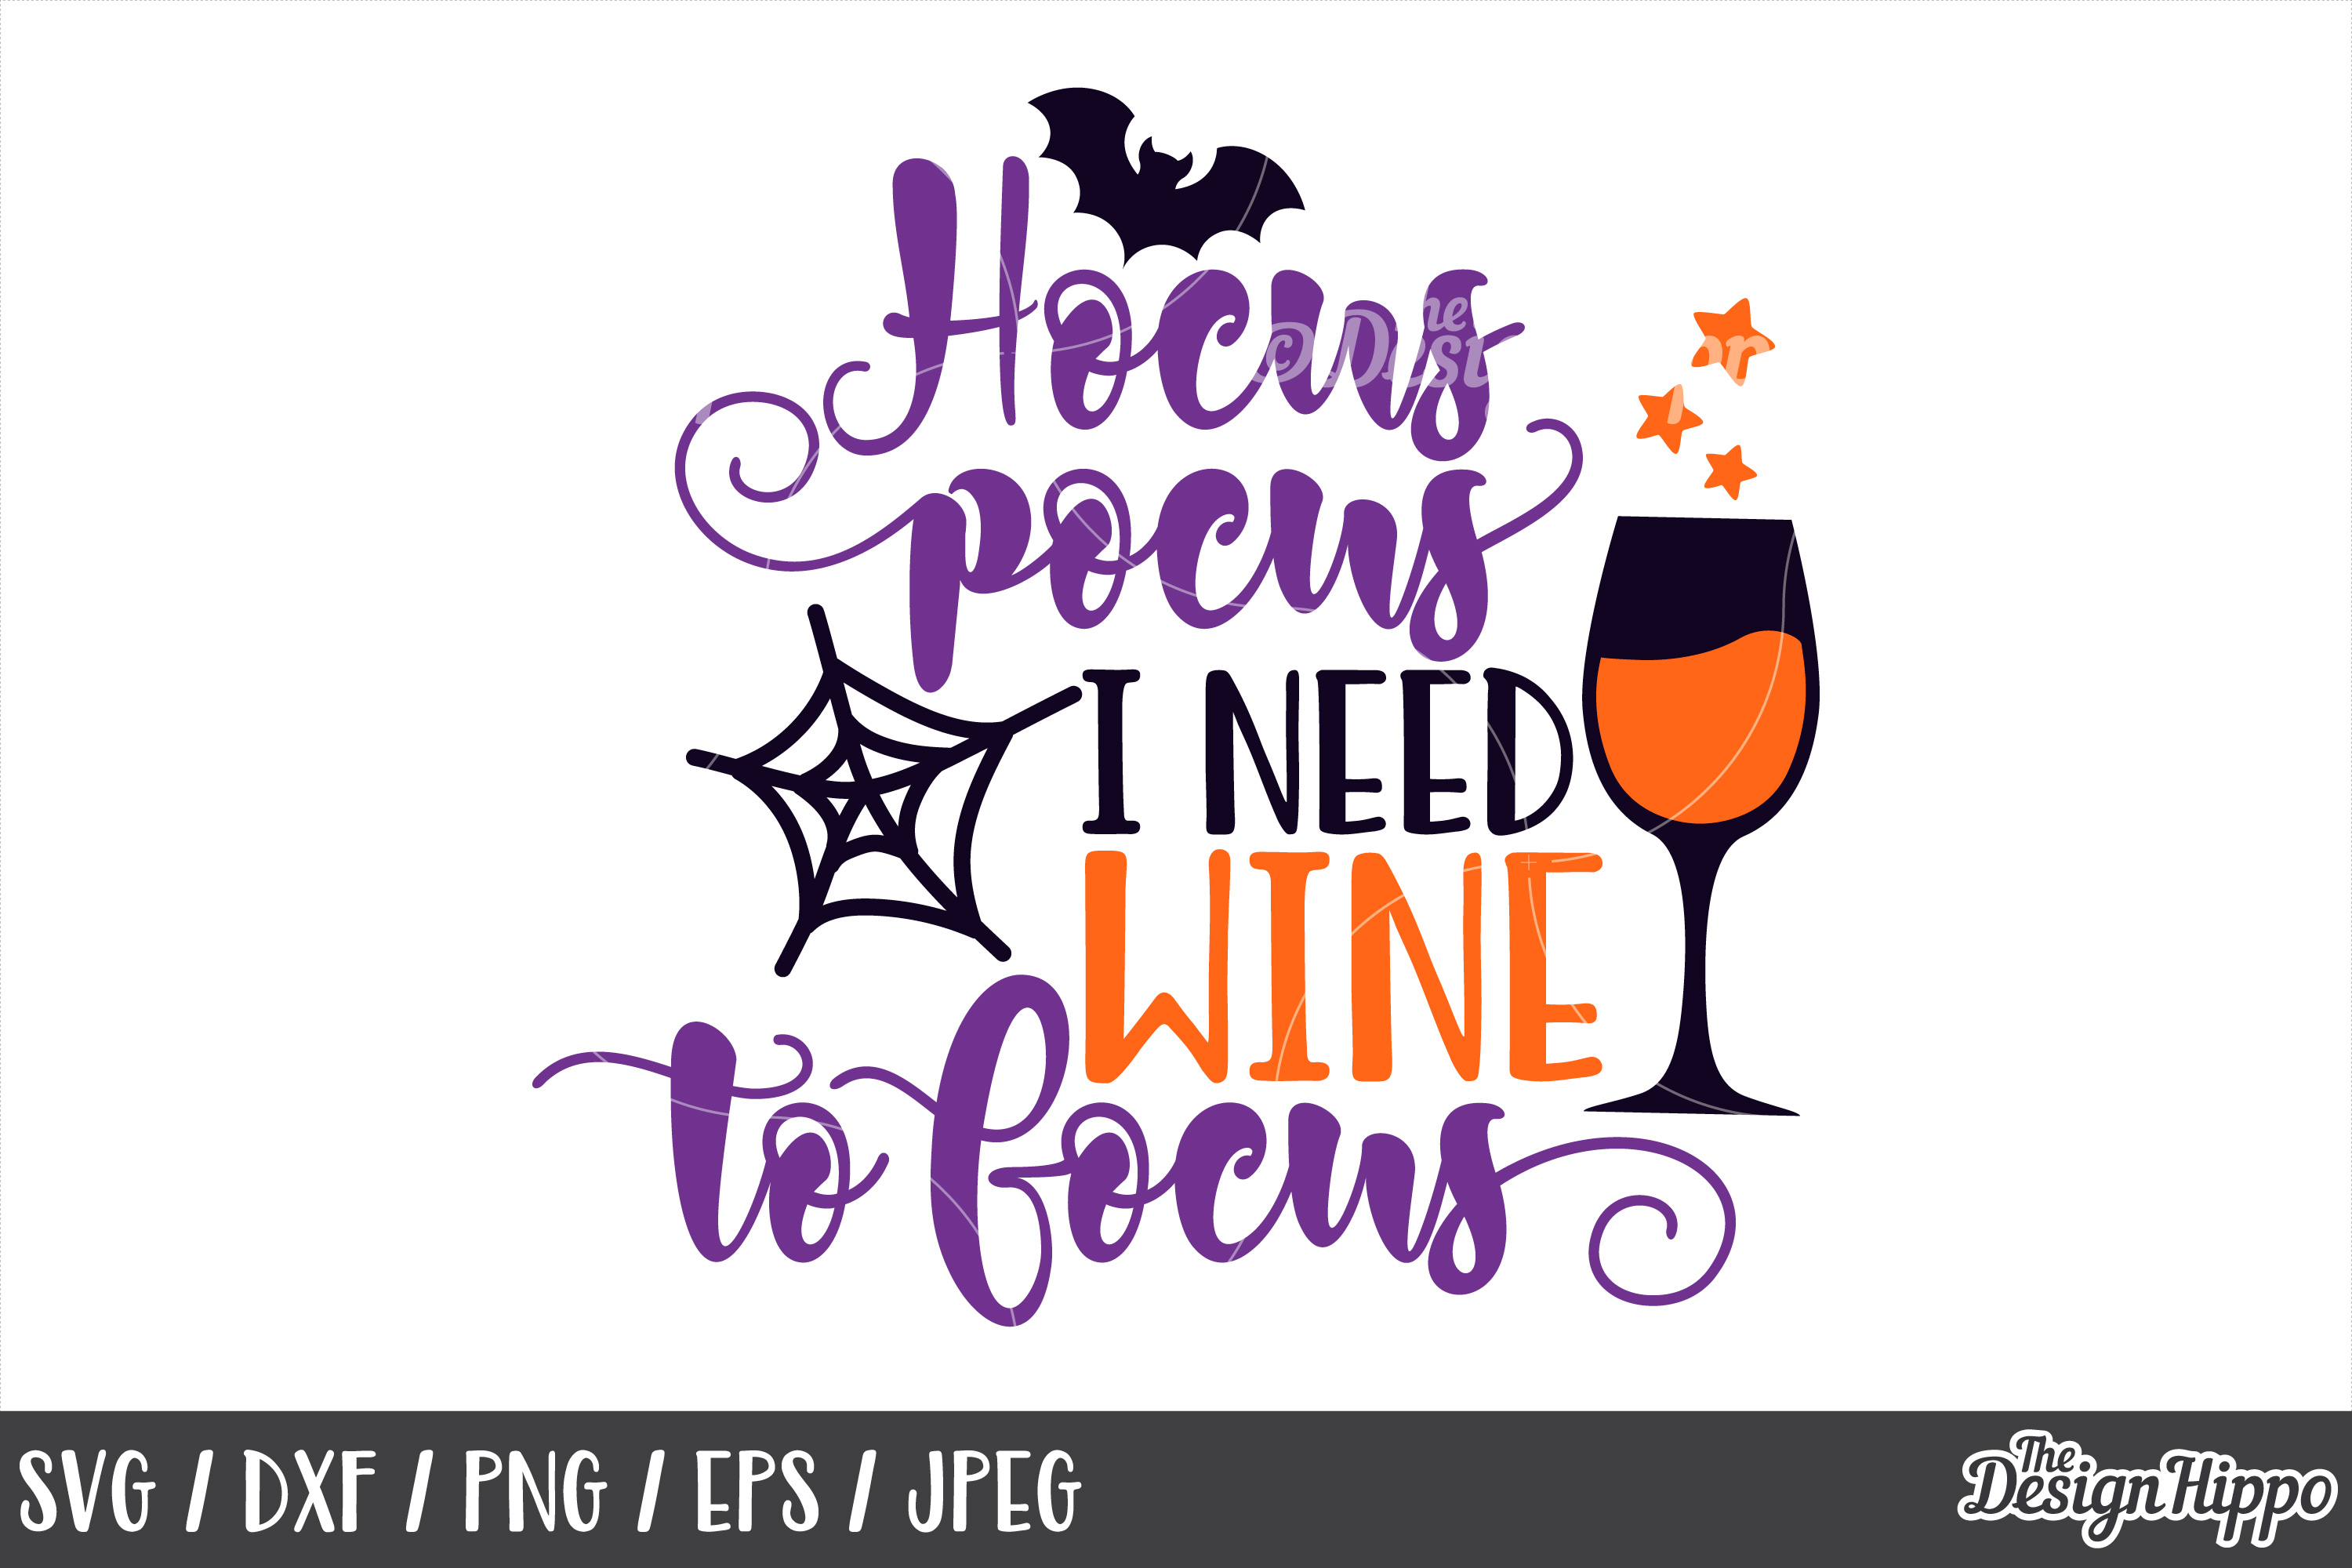 Hocus pocus I need wine to focus, SVG, Halloween Sayings SVG example image 1